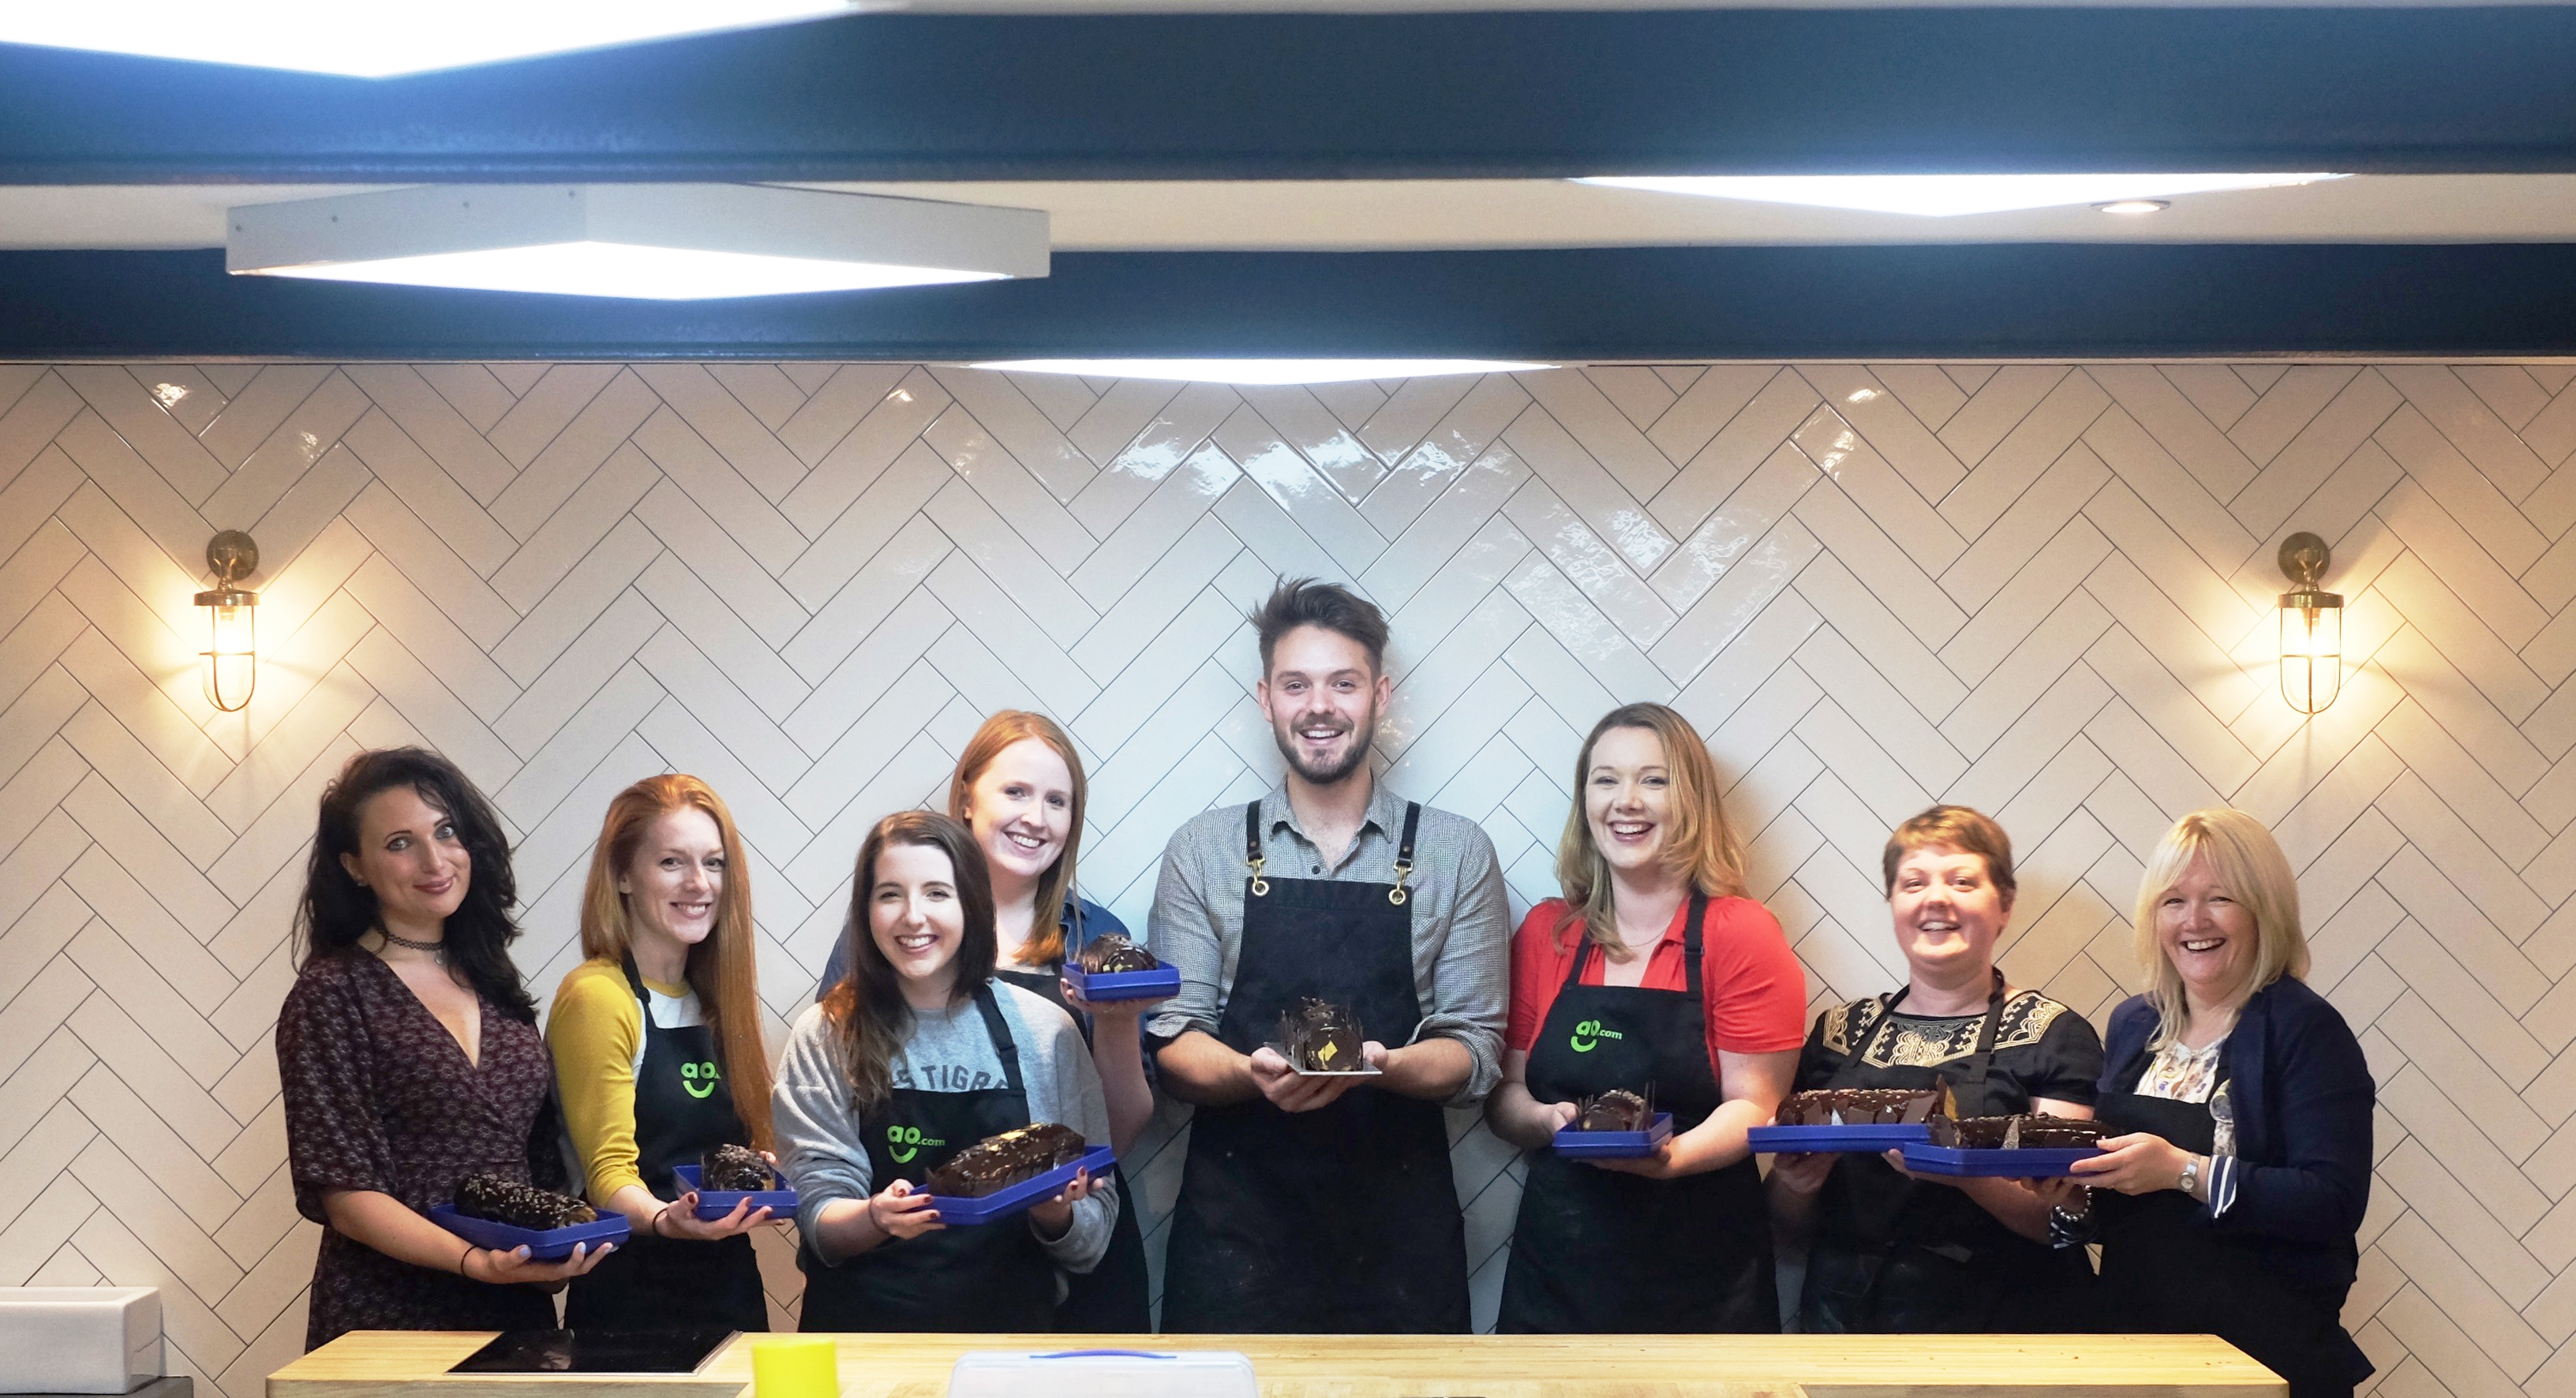 John Whaites Cookery School